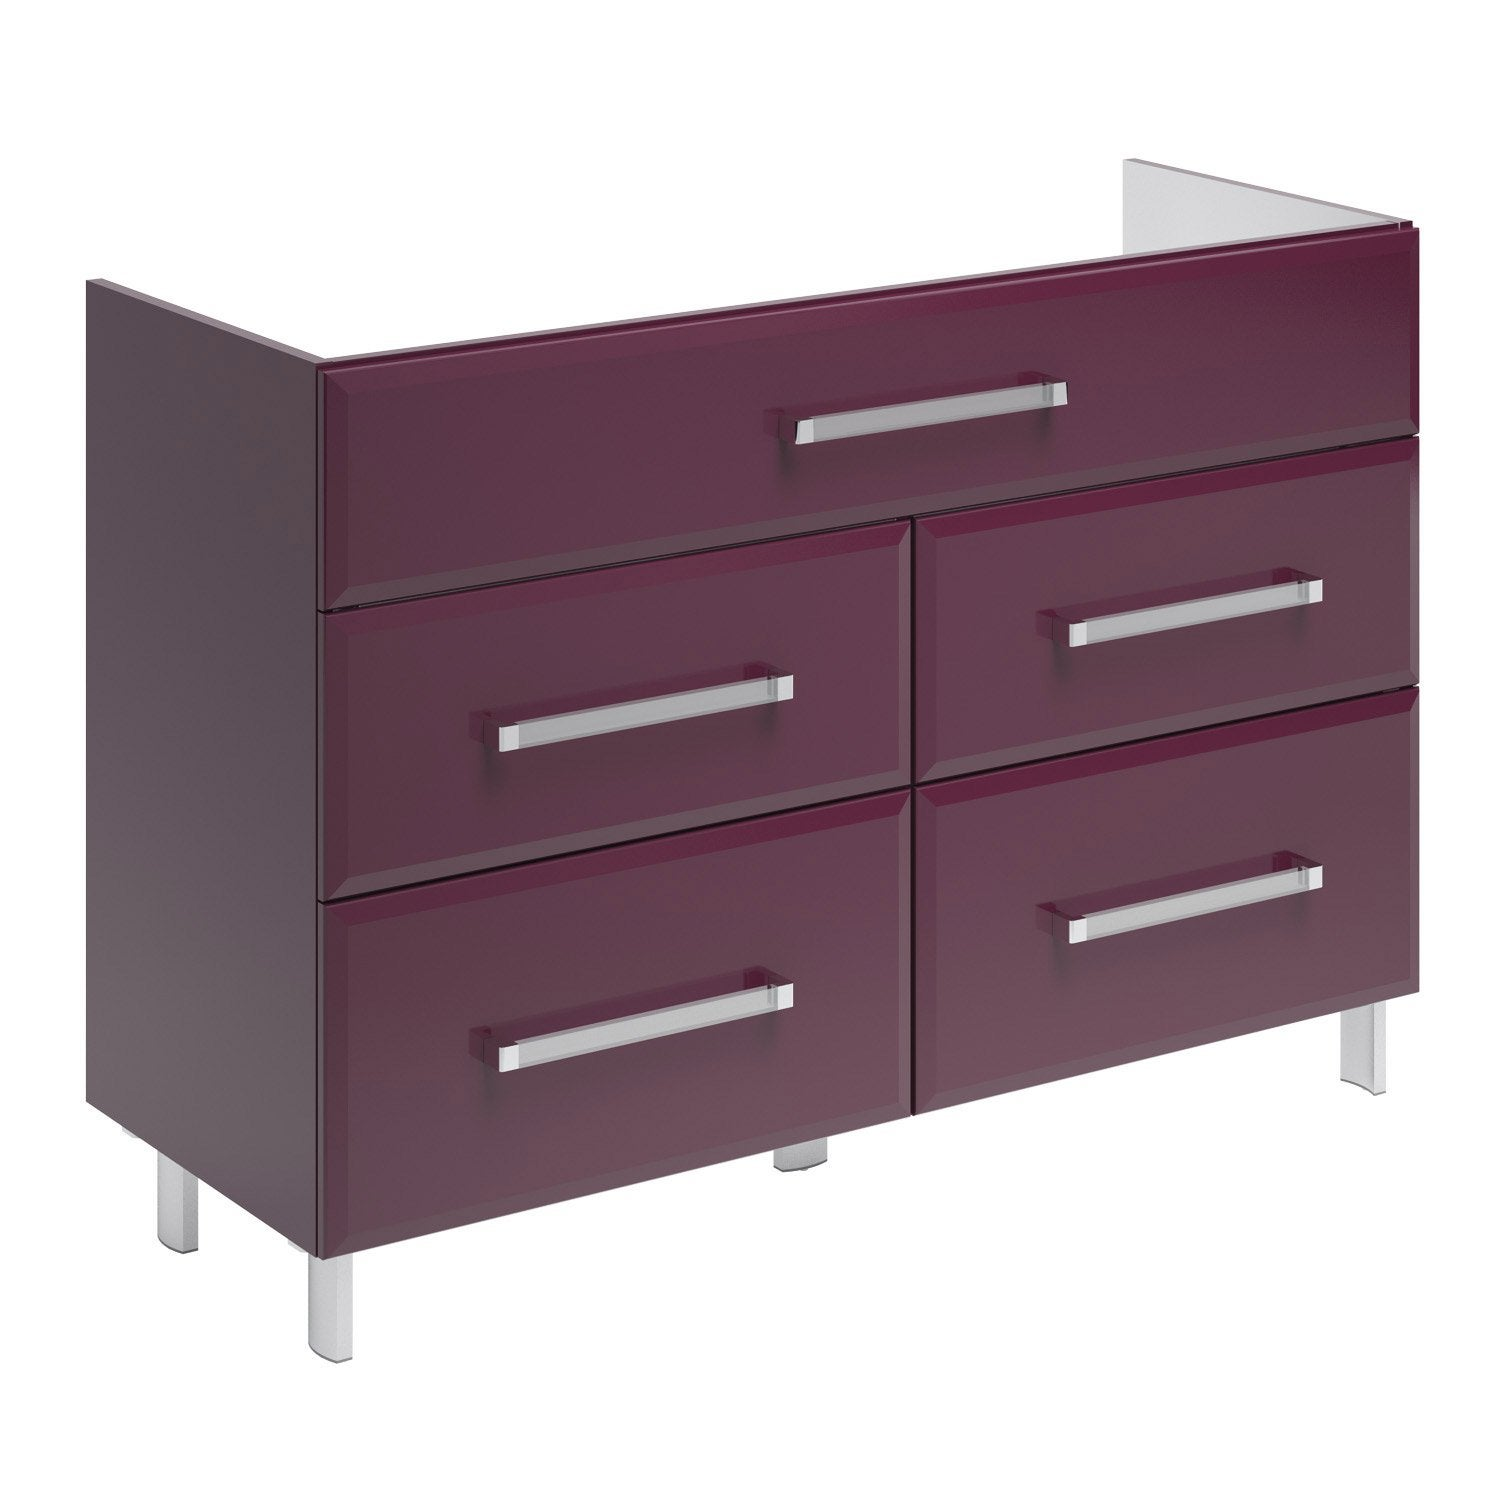 Meuble sous vasque x x cm violet for Meubles leroy merlin